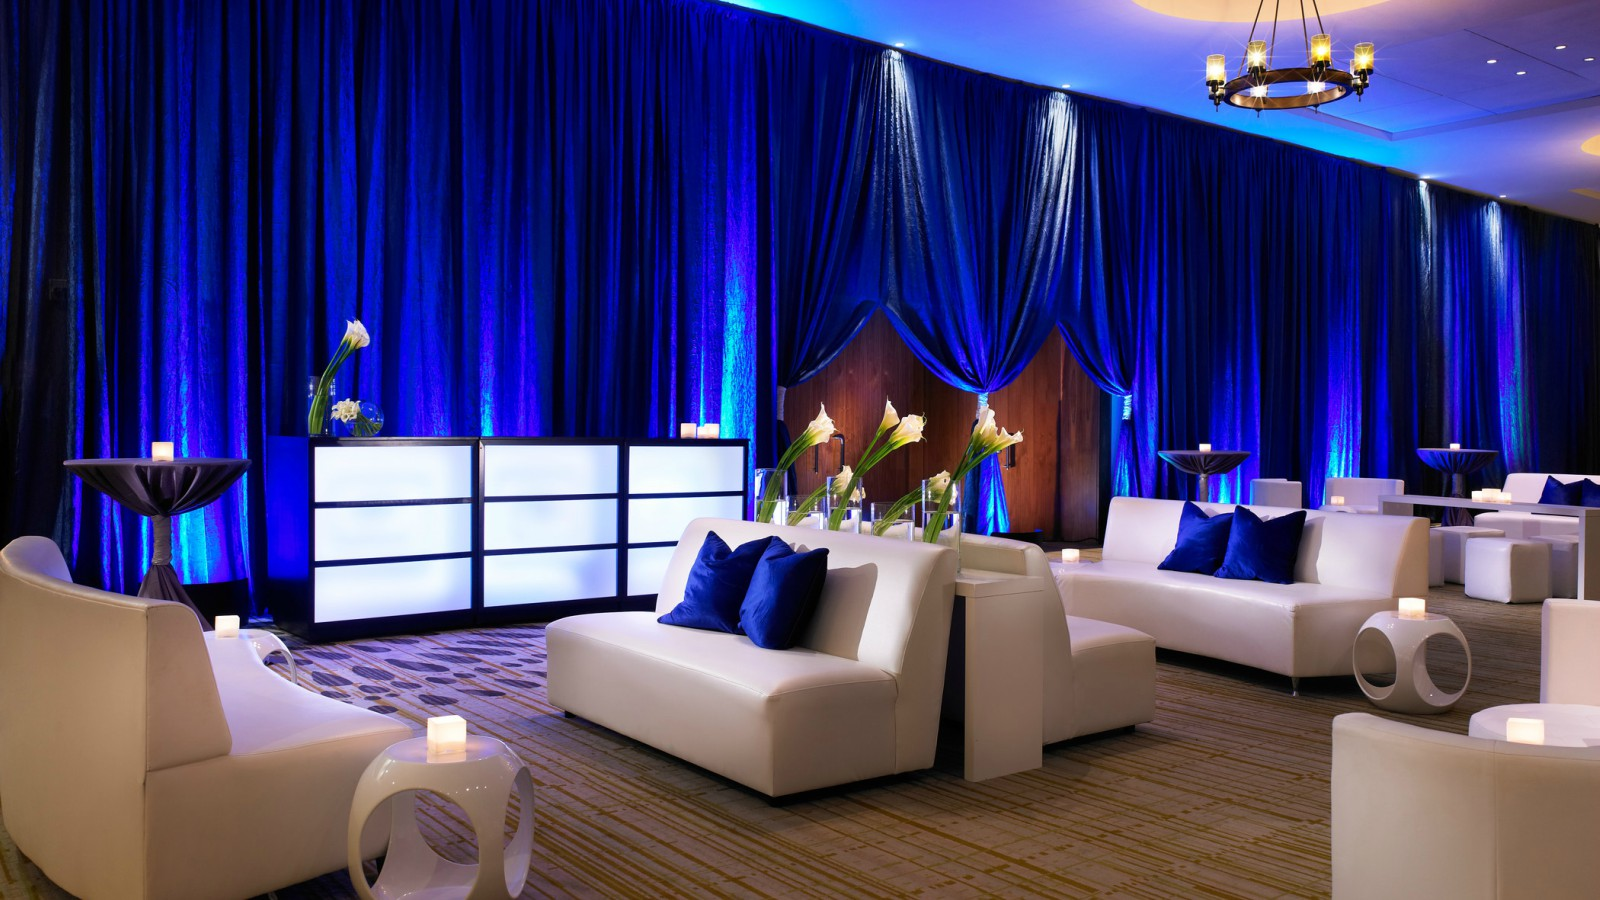 Bellevue Meeting Space - Grand Ballroom Foyer